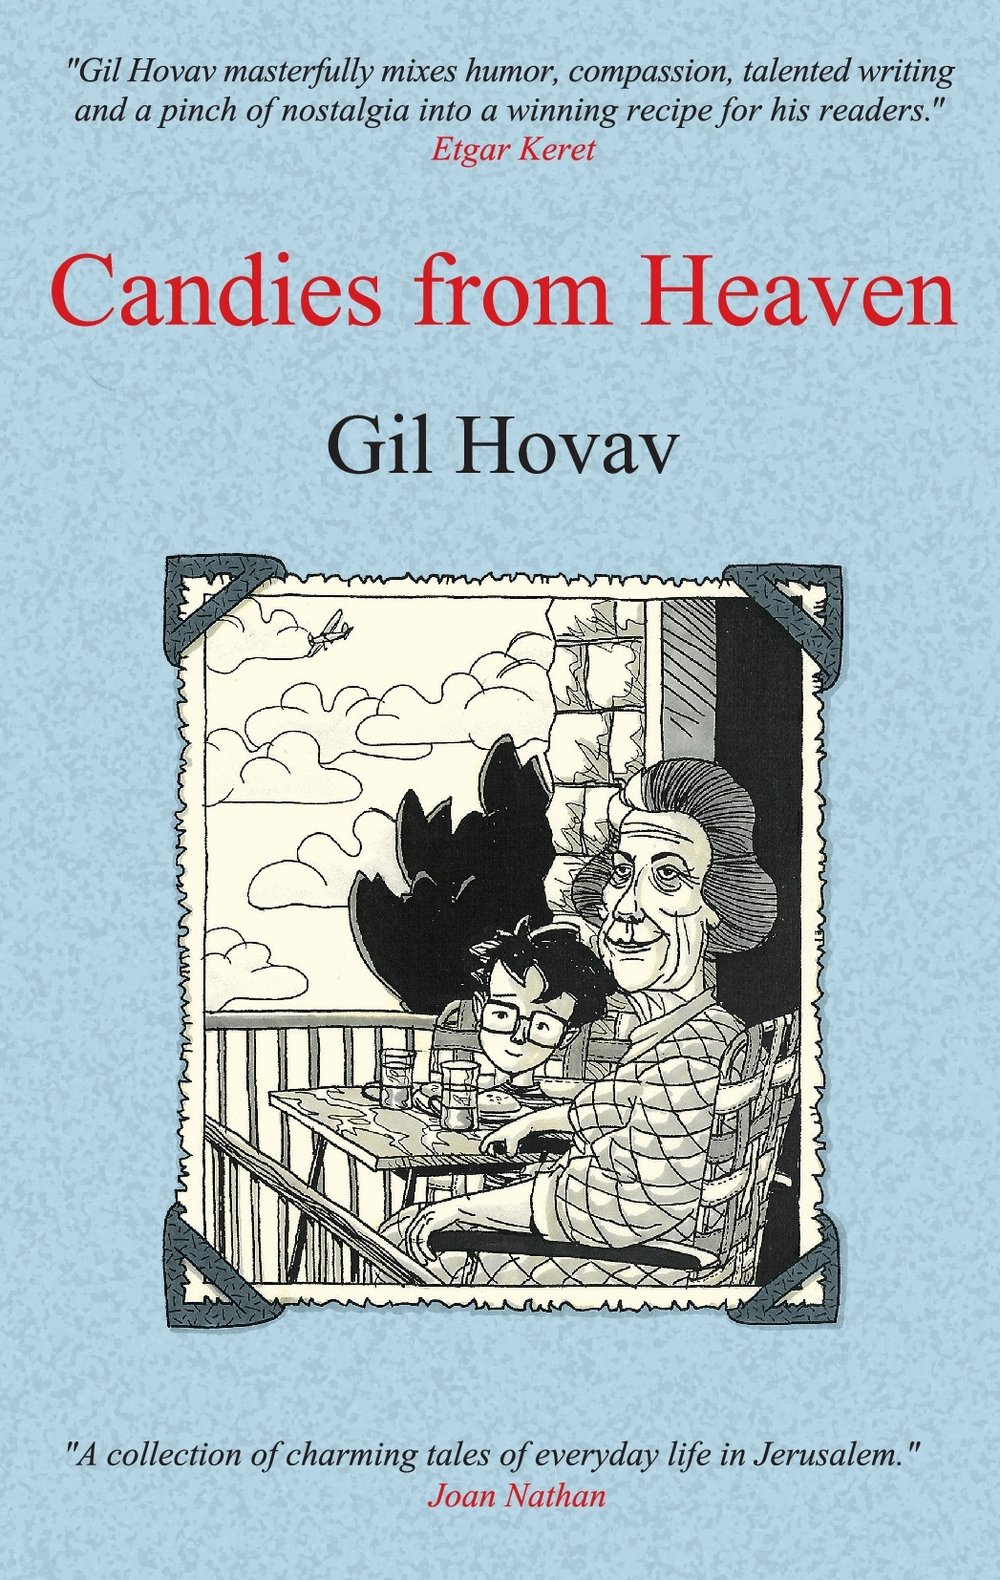 """The cover of Gil Hovav's memoir, """"Candies from Heaven."""" Credit: Toad Publishing."""